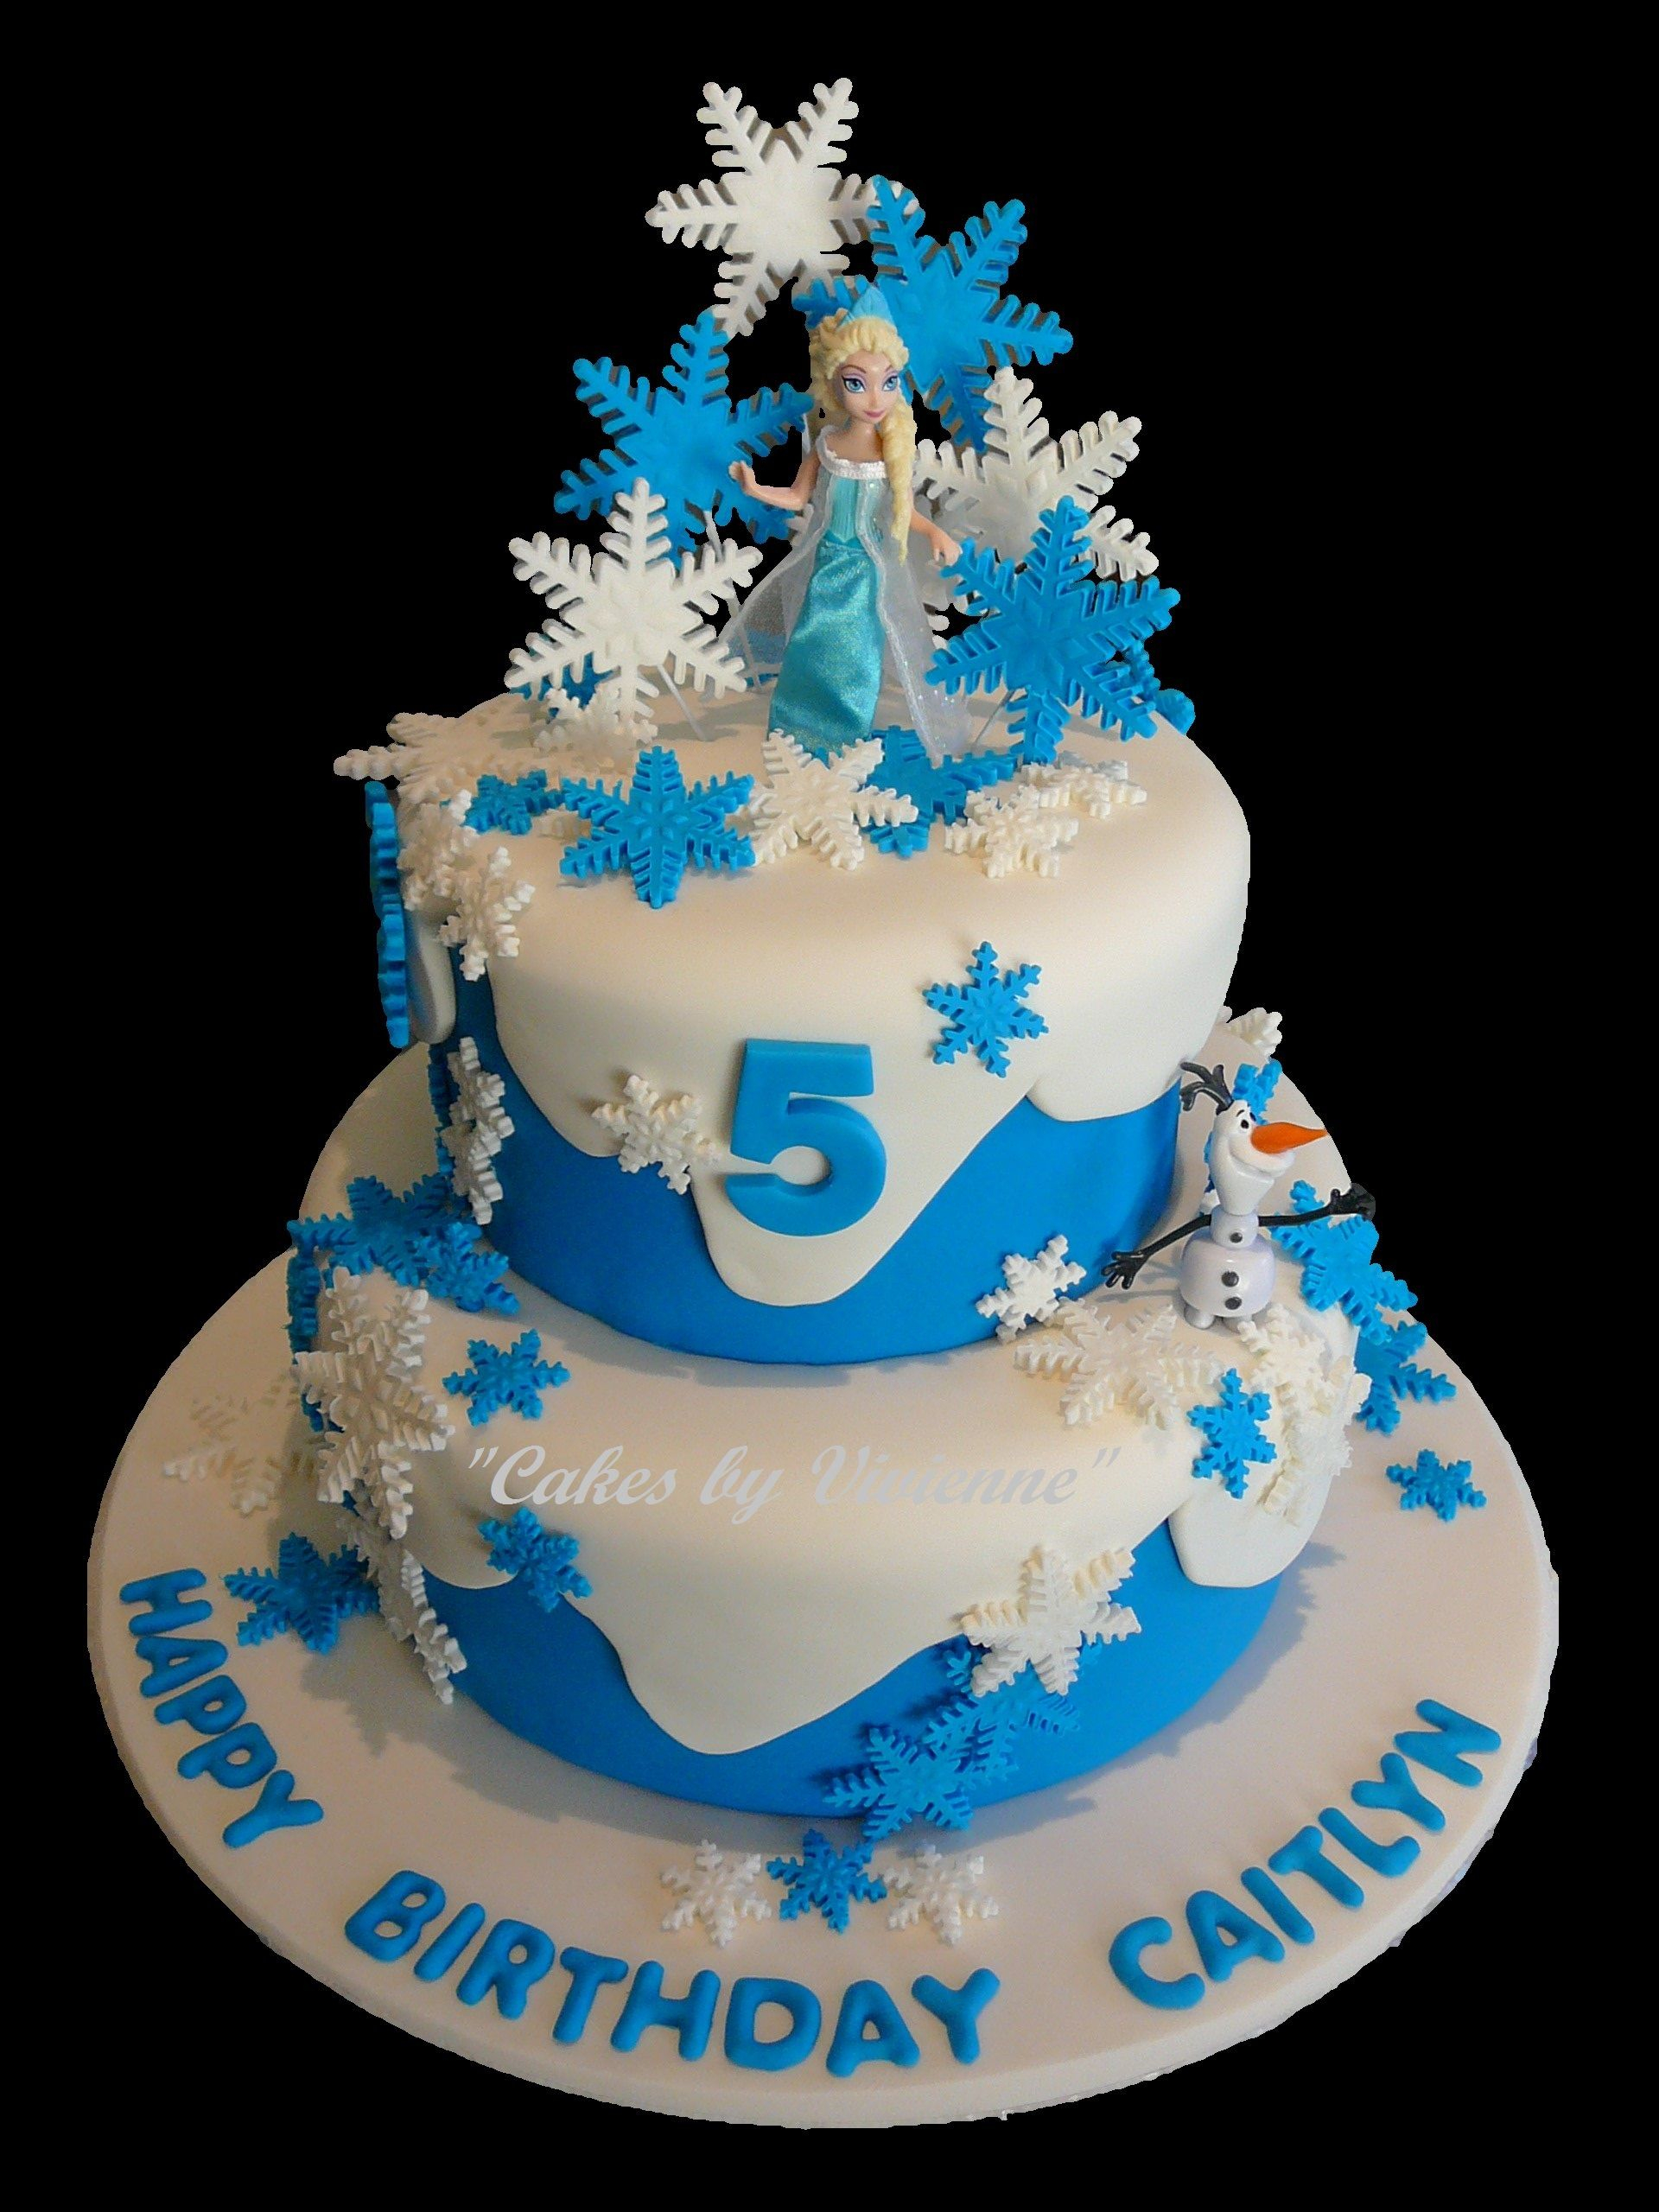 Elsa Birthday Cakes Frozen Themed Cake For A 5 Year Old Featuring Olaf